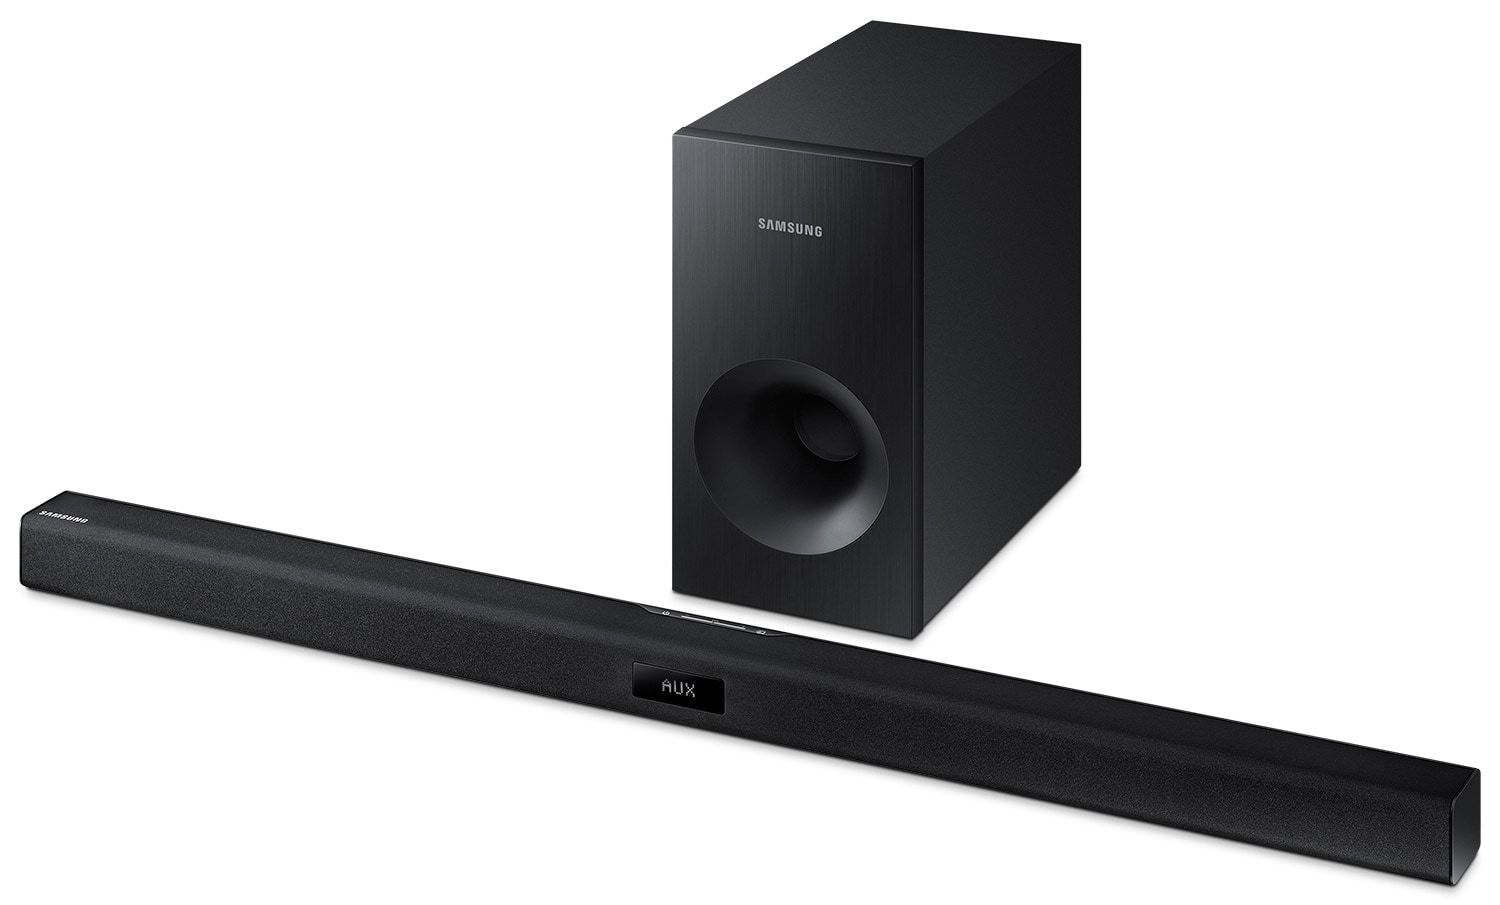 Samsung J355 Soundbar and Subwoofer – 120W